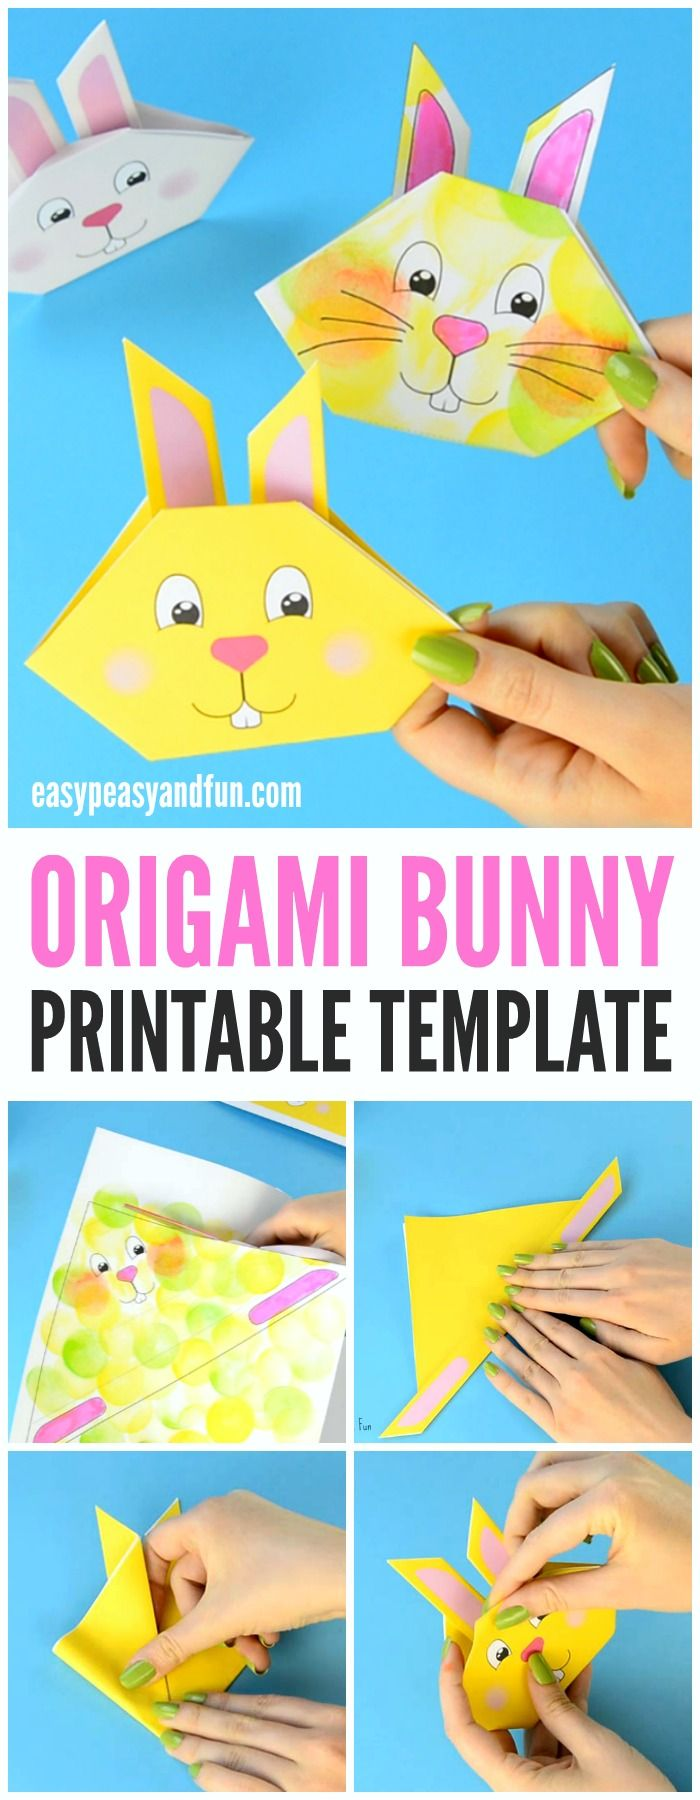 Cute Origami Bunny Template Craft Idea for Kids to Make